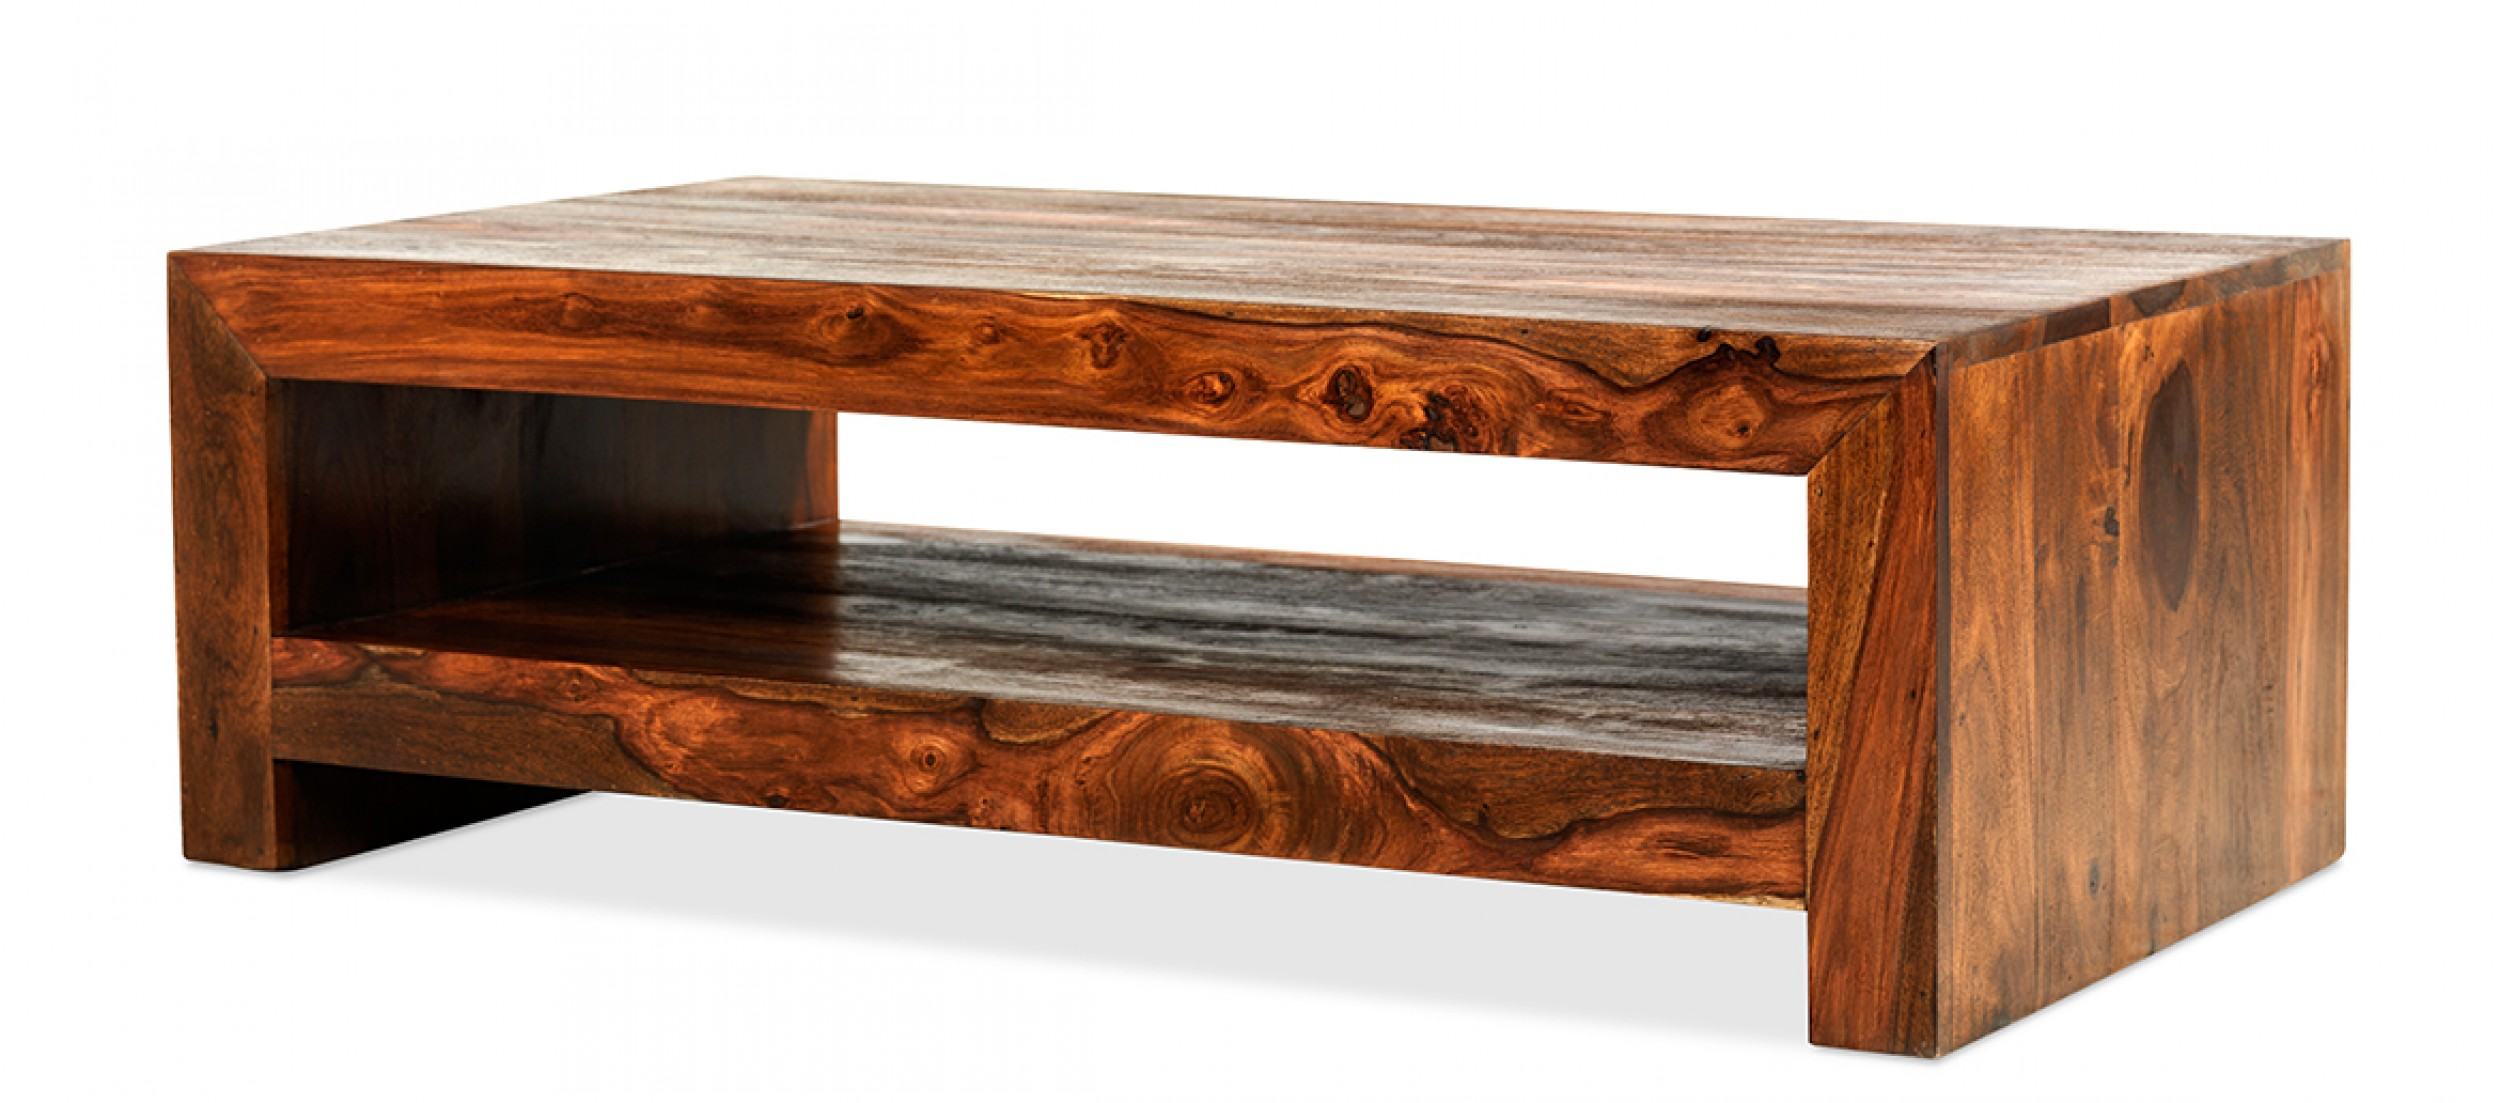 Cube Sheesham Contemporary Coffee Table Quercus Living